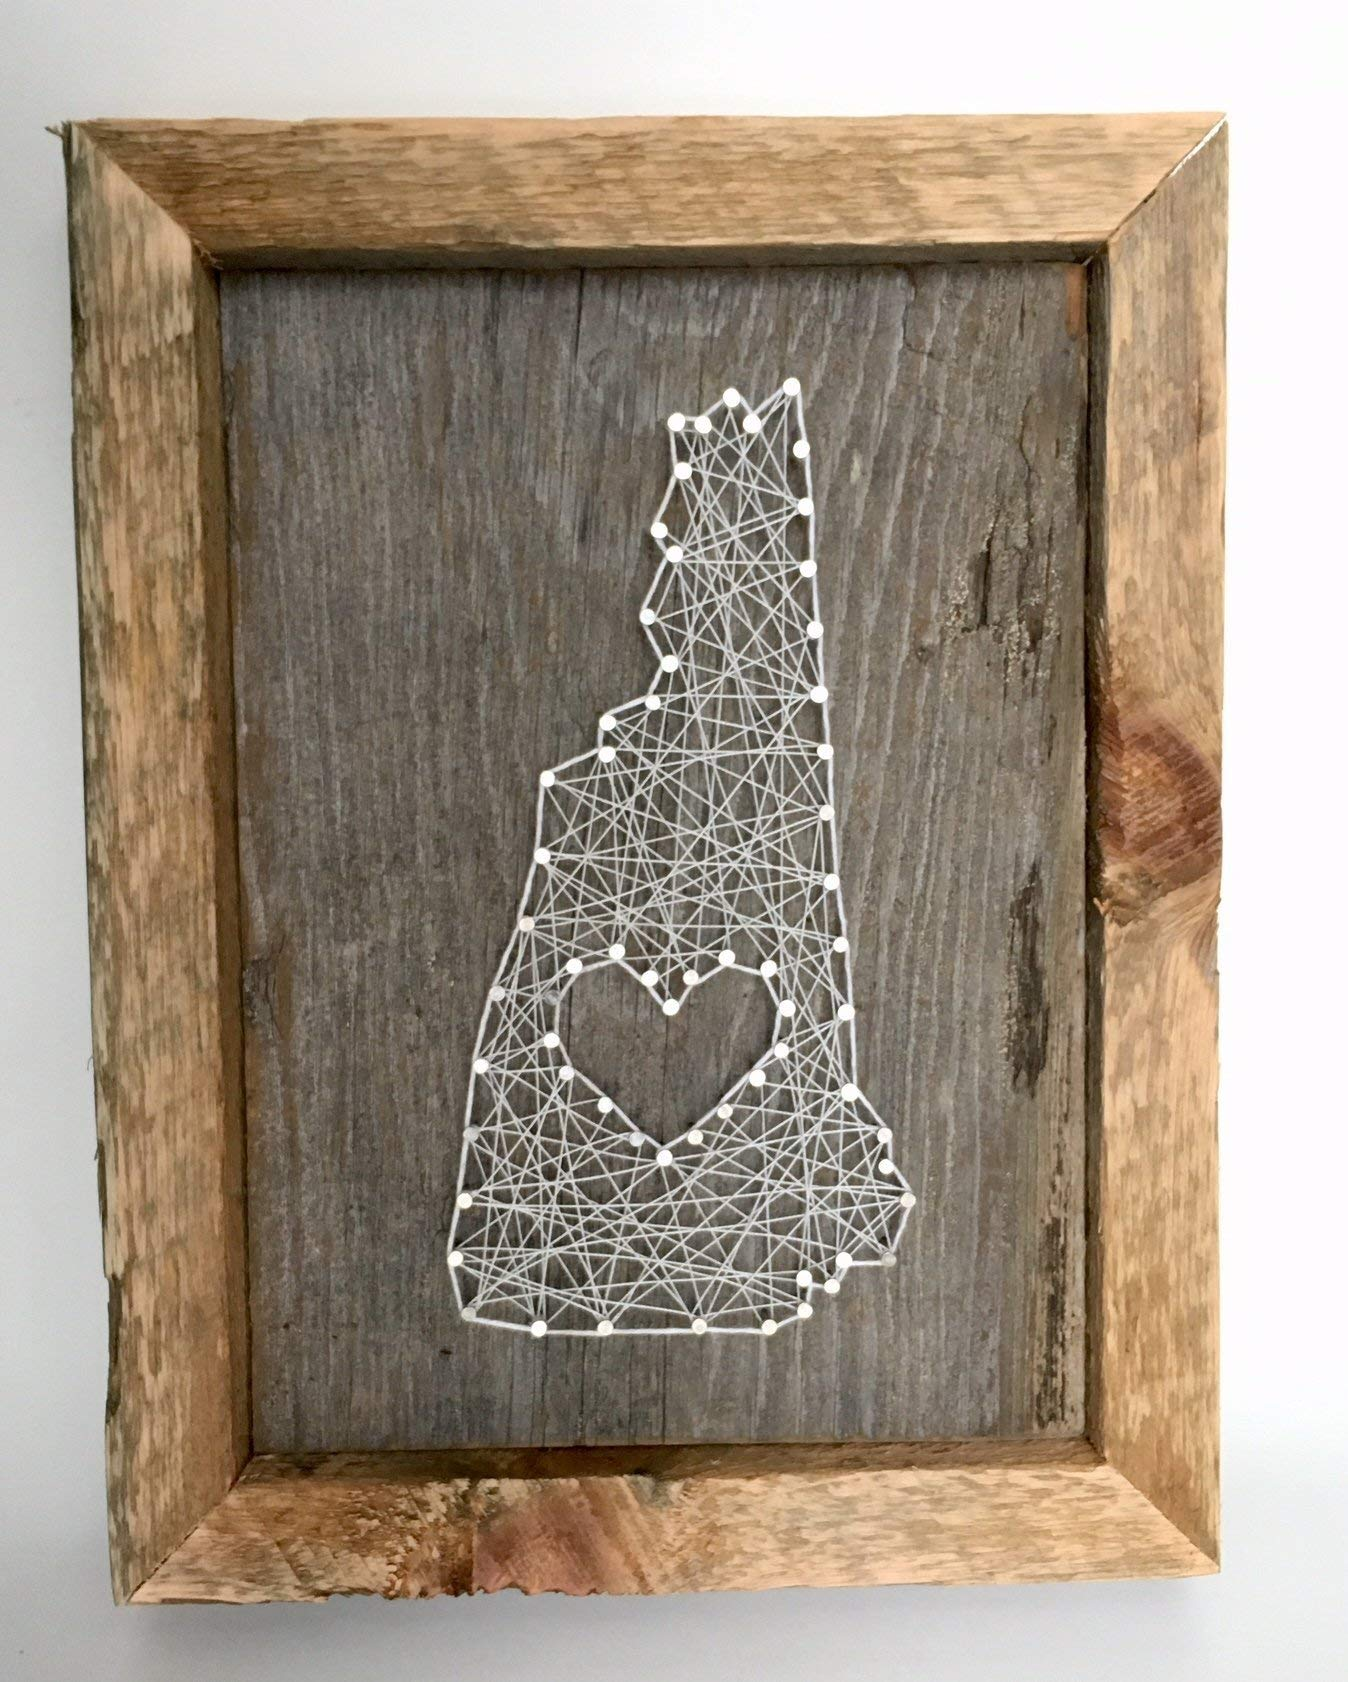 Framed New Hampshire love reclaimed wooden string art sign - A unique and romantic Wedding, Anniversary, House warming, Birthday Valentne's Day and Christmas gift by Nail it Art (Image #1)